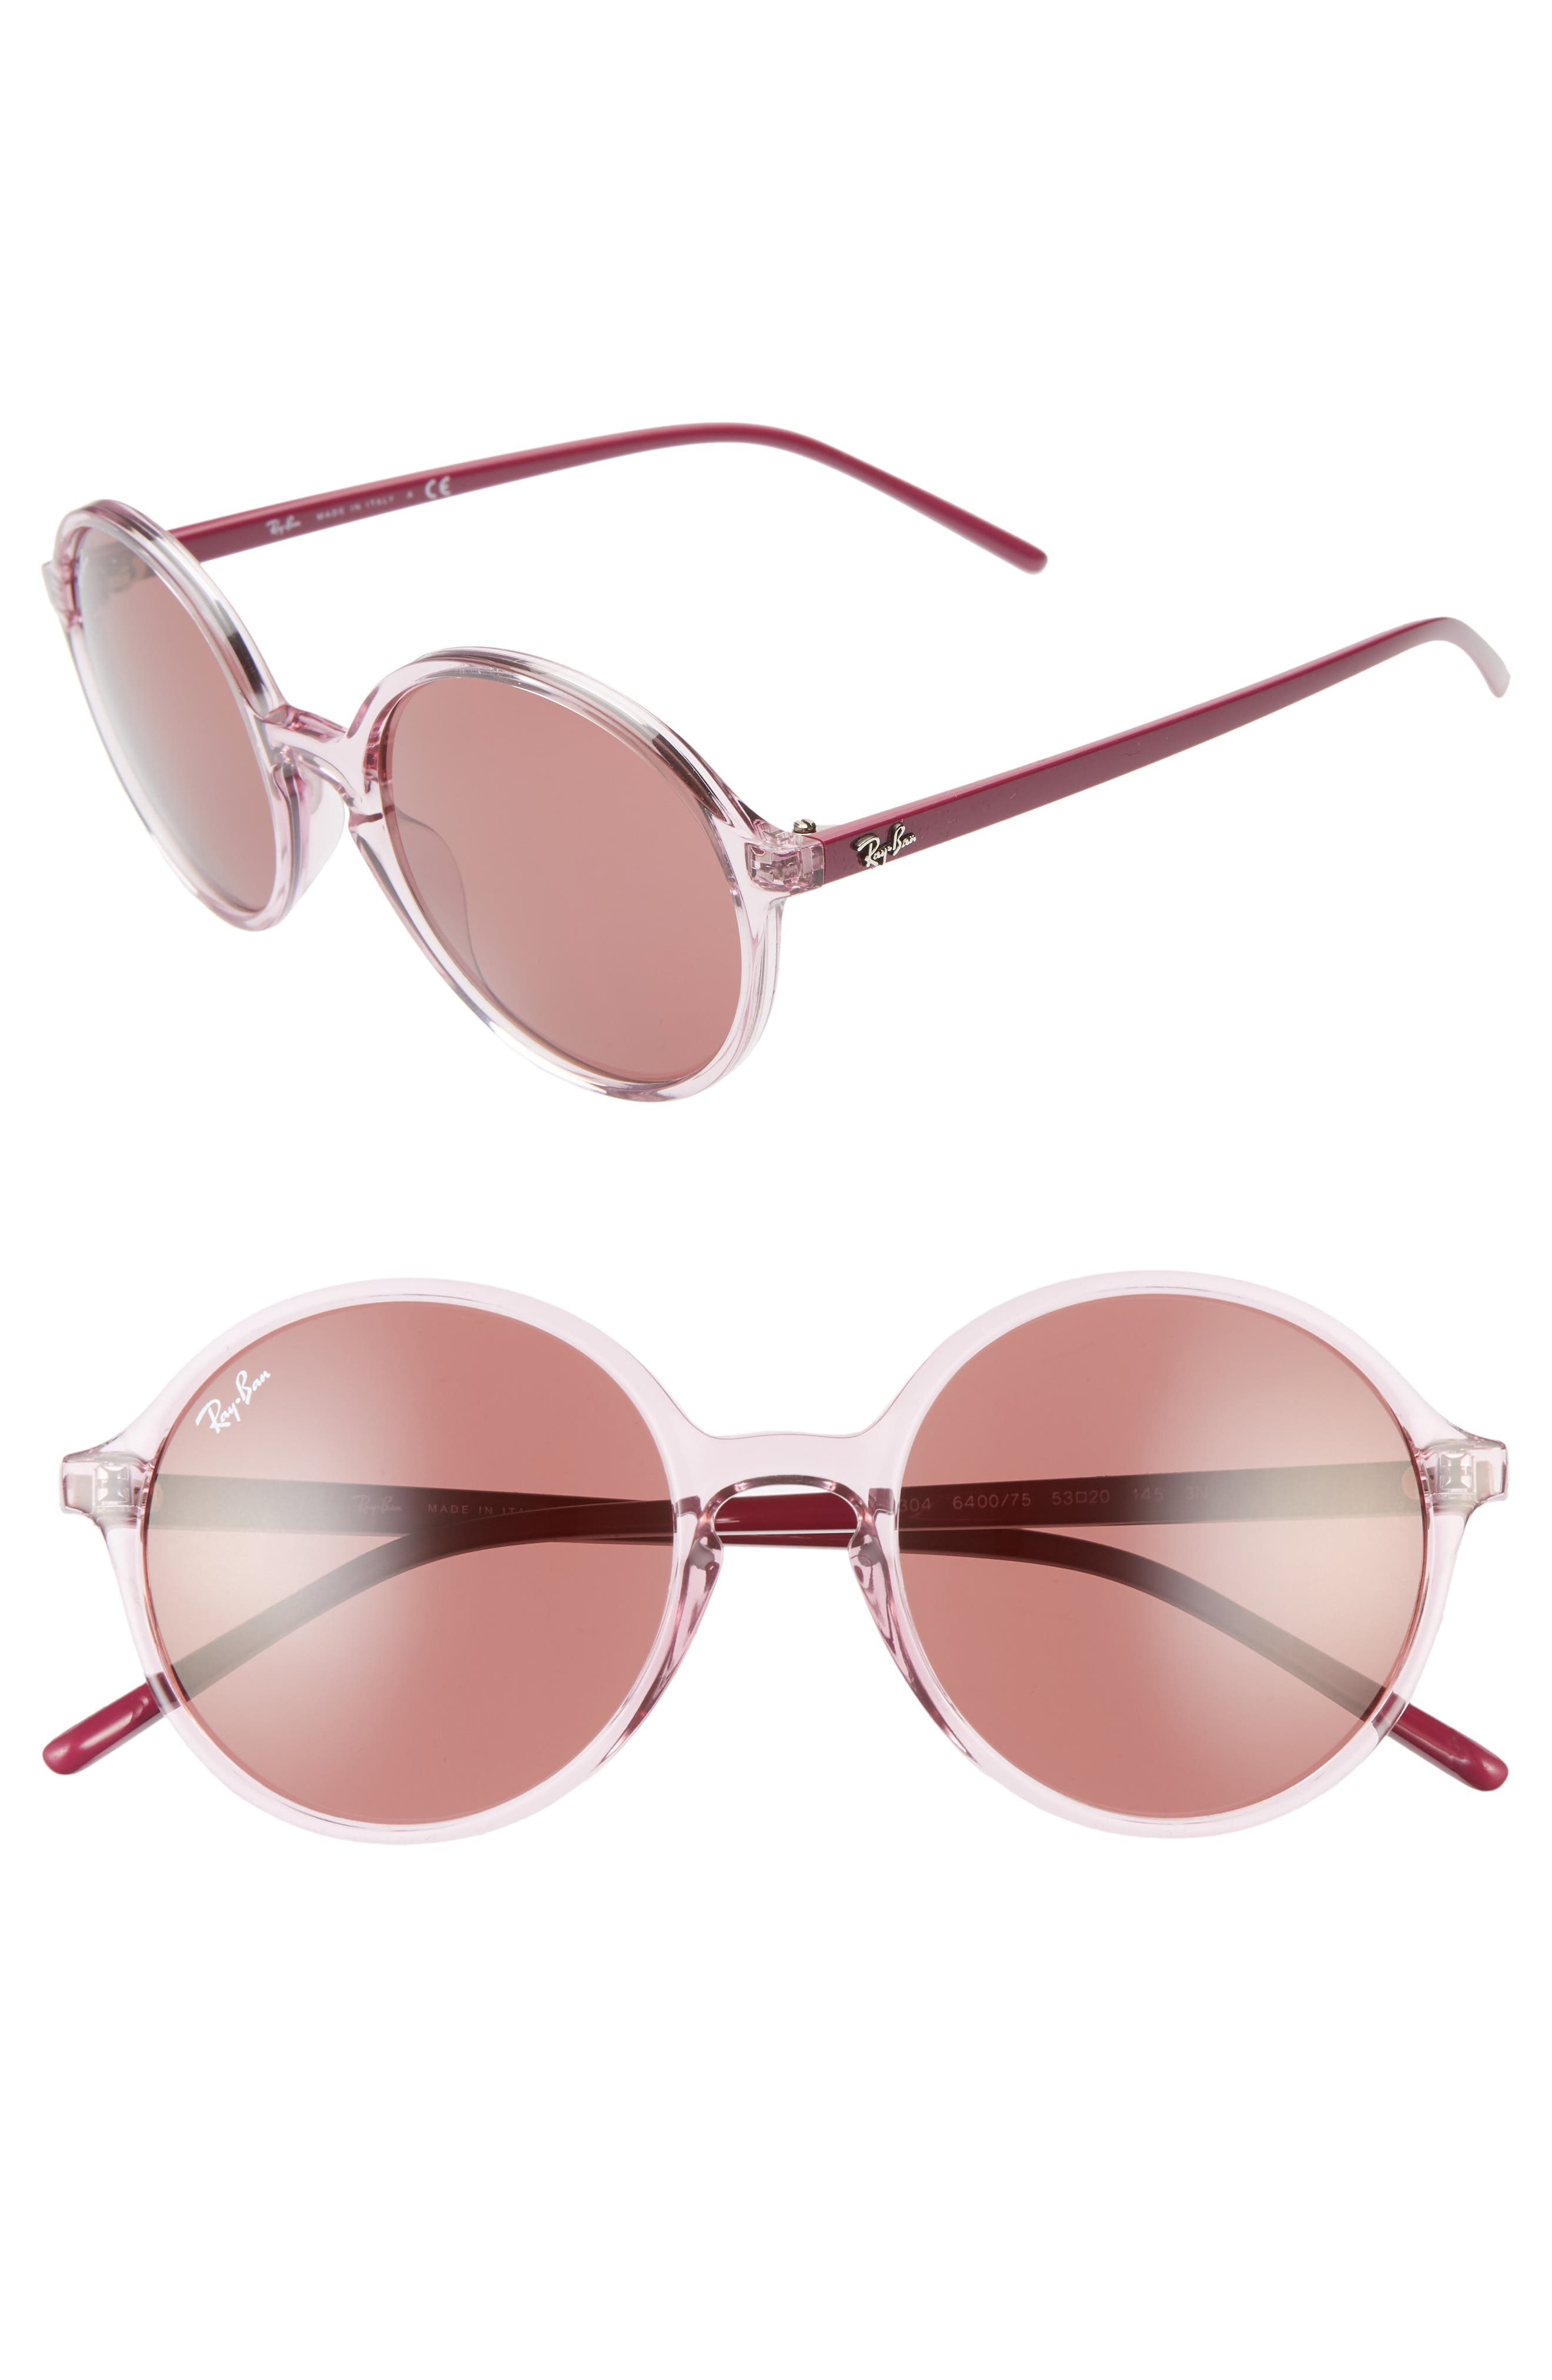 Ray-Ban 5m Round Sunglasses - Transparent Pink/ Pink Solid